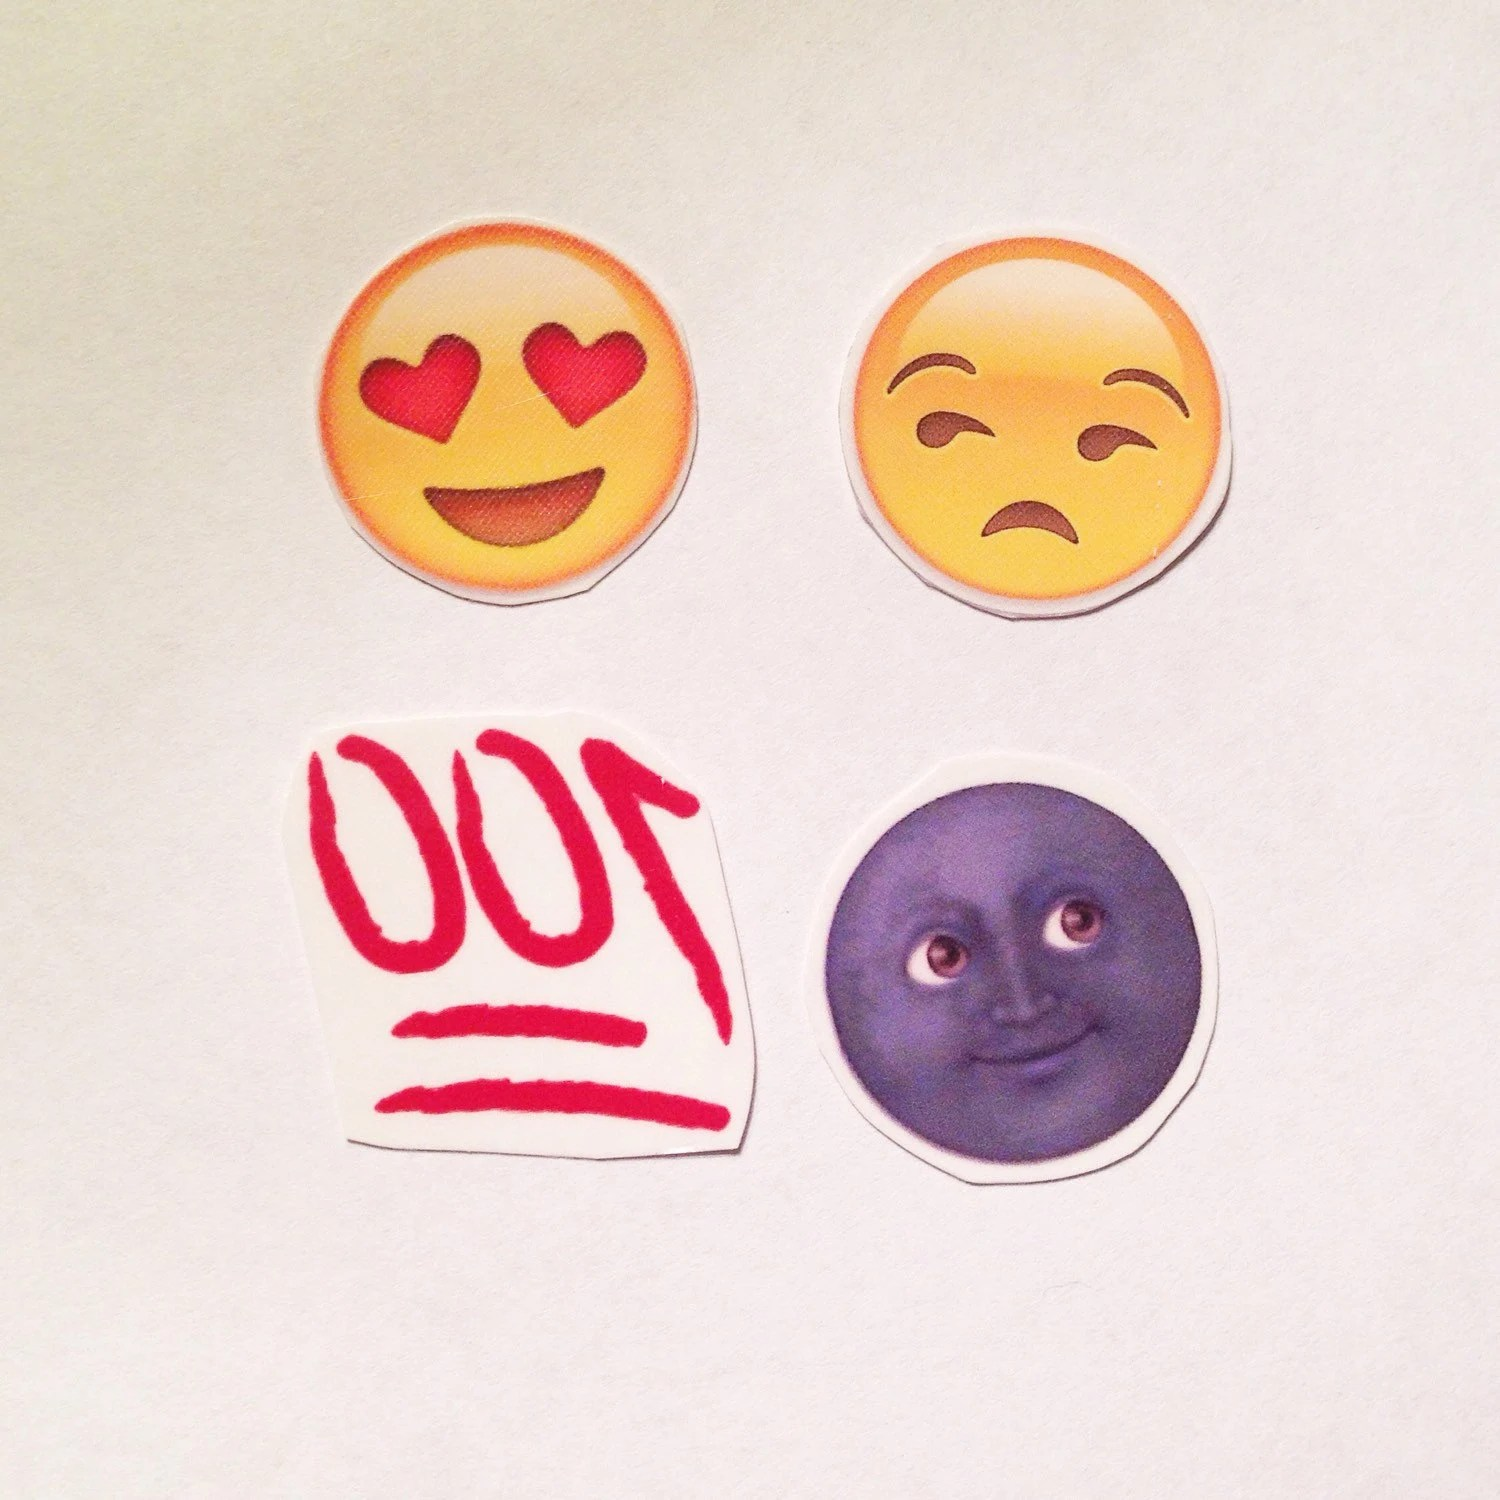 Emoji Temporary Tattoos By Twolamegirls On Etsy Ideas And Designs